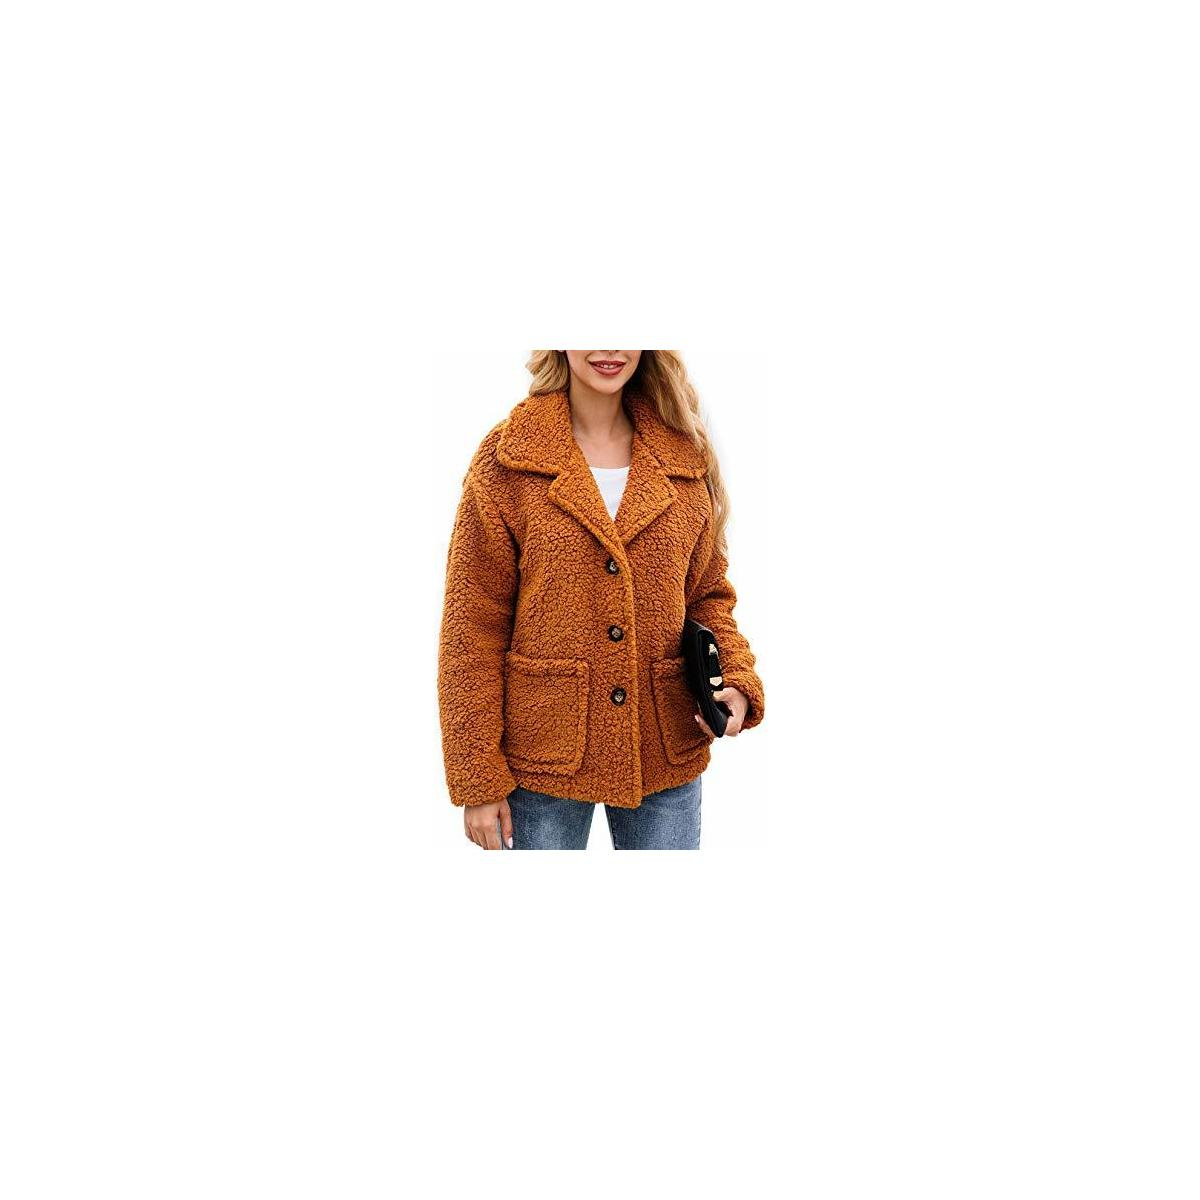 Women's Coat Casual Lapel Fleece Fuzzy Cozy Fit Cardigans Shearling Button Winter Coat Jackets with Pockets